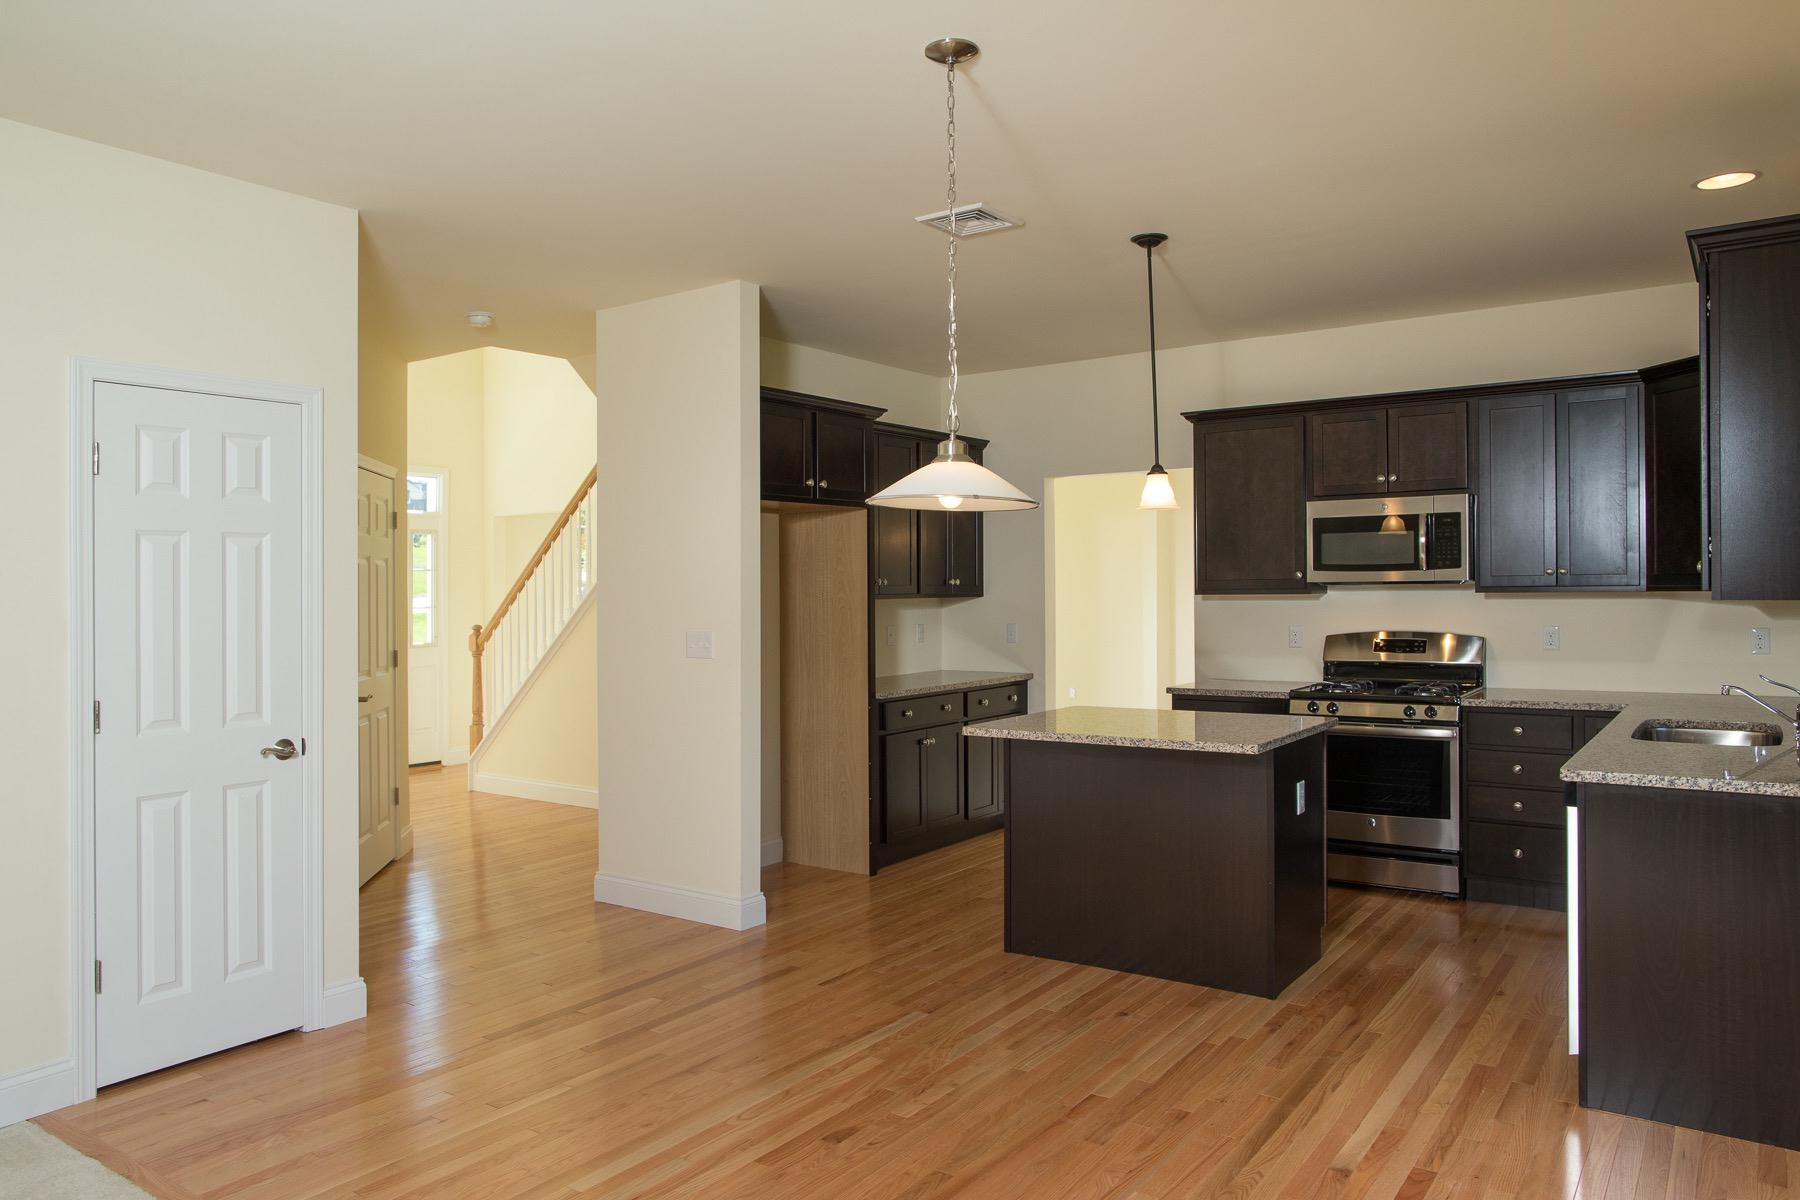 Kitchen featured in the Copake-The Estates By Sleight Farm at LaGrange in Dutchess County, NY